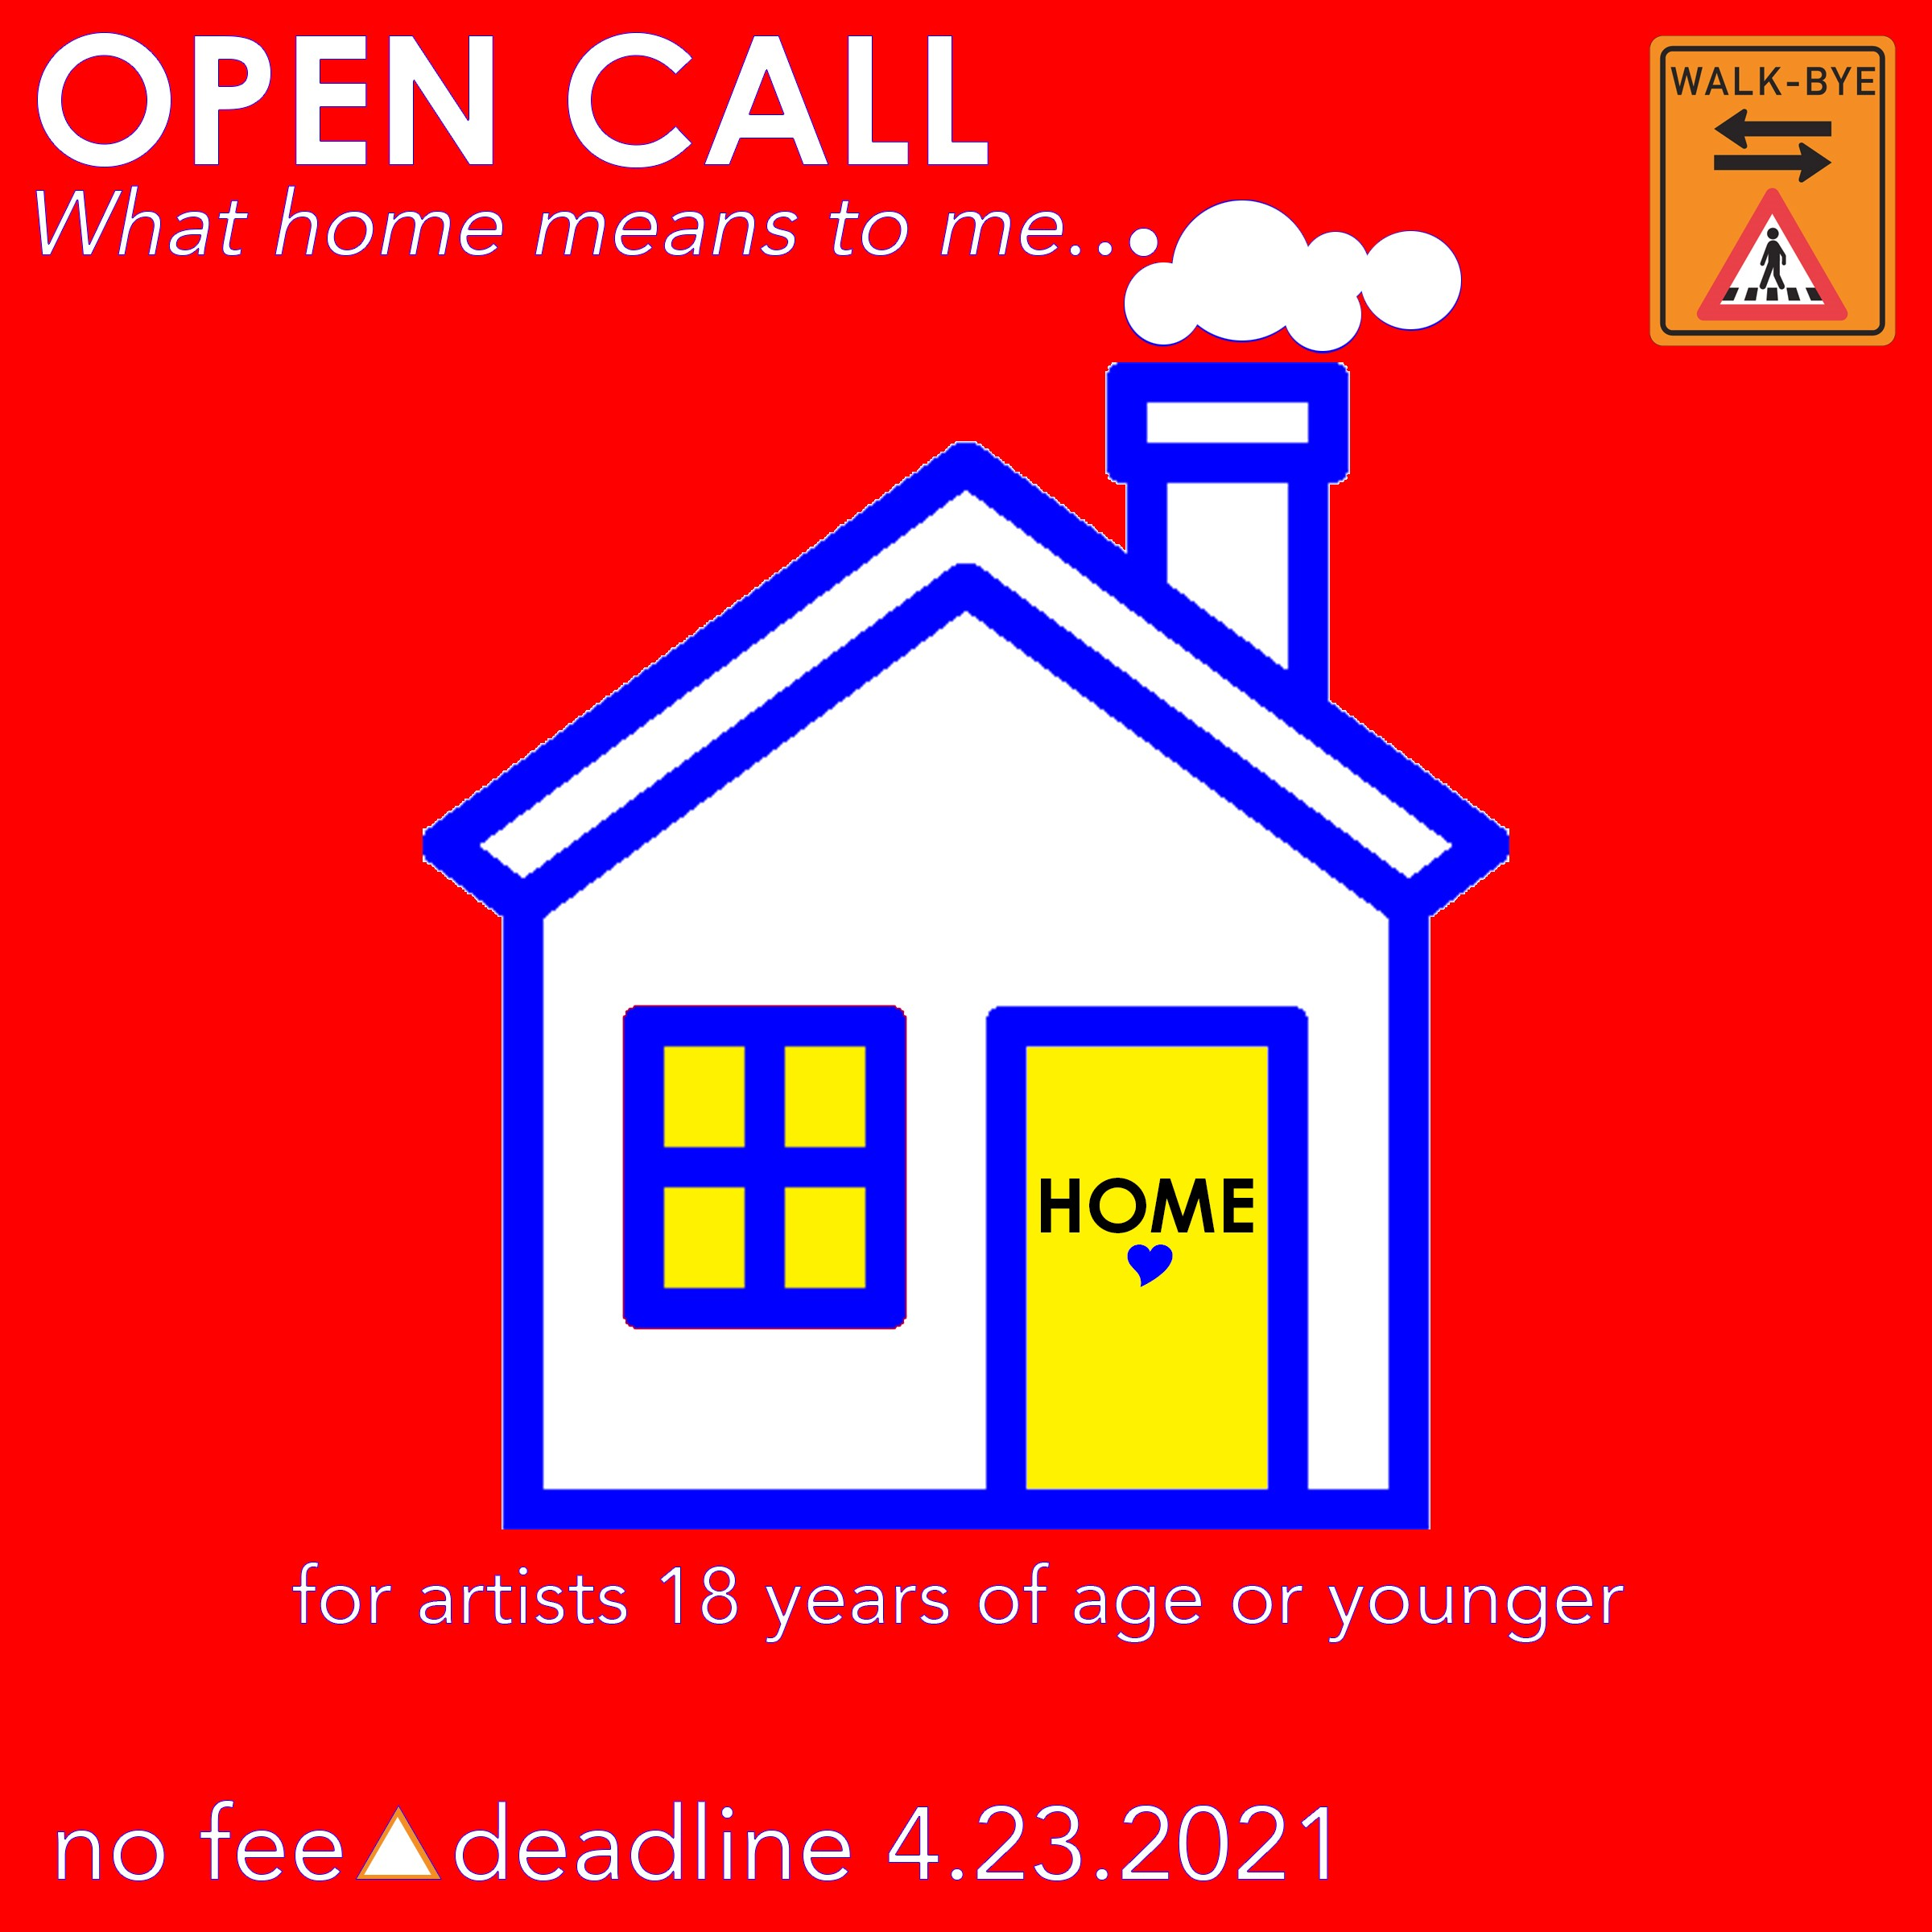 OPEN CALL Walk_Bye Flyer. Red background with a white house on it.